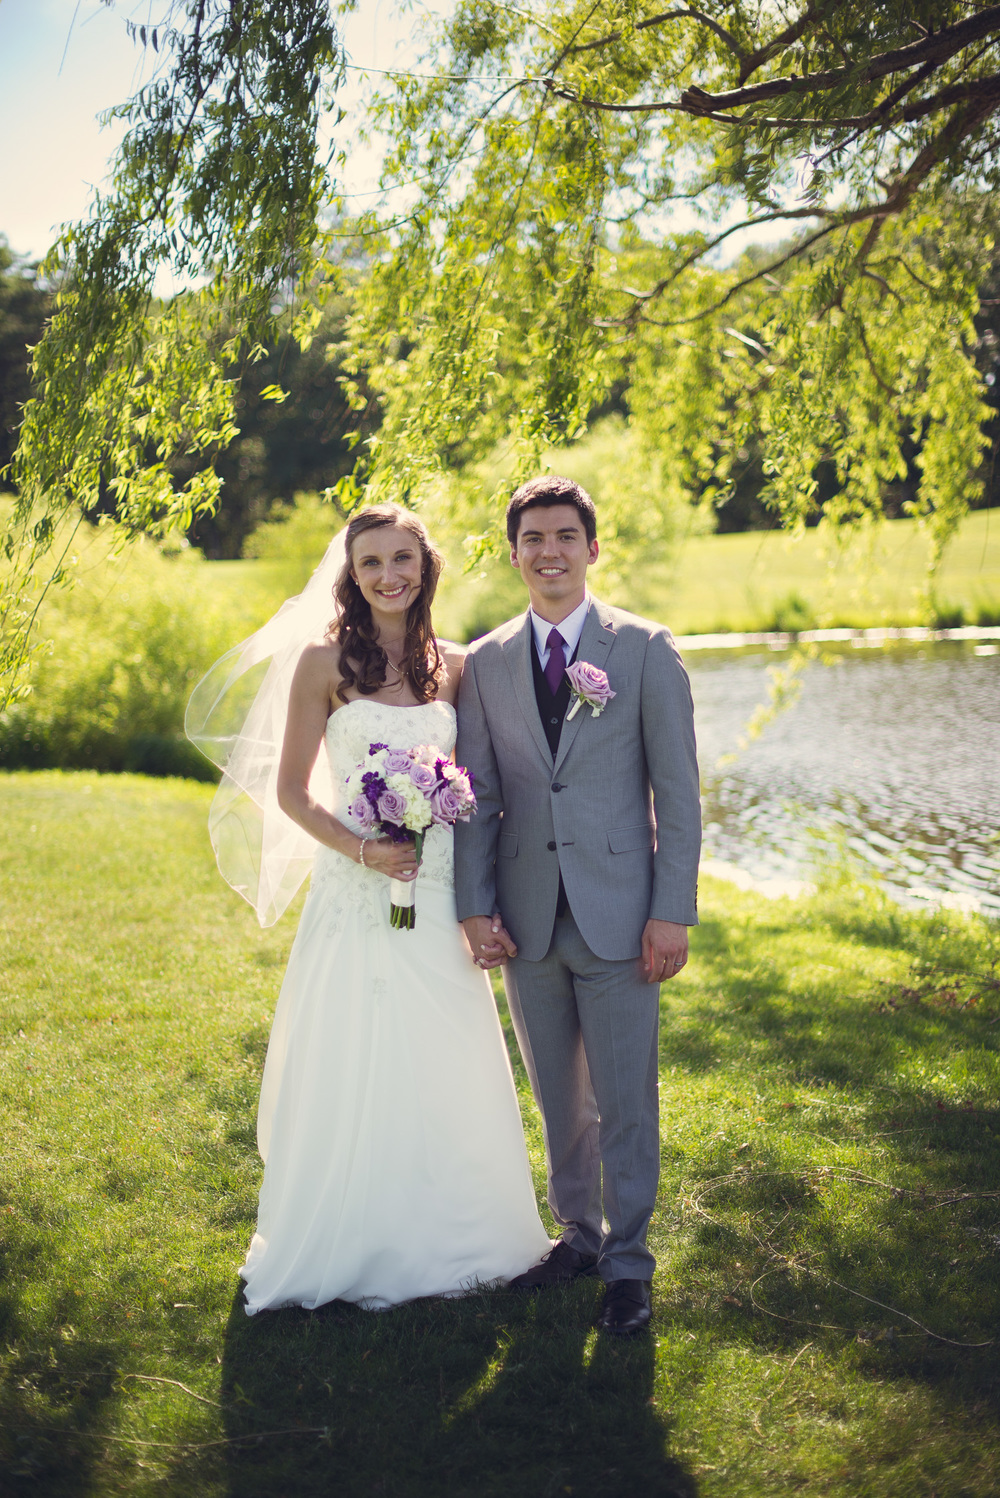 Blue Heron Pines Golf Club sunshine daytime wedding bride groom smiling husband wife love portrait THPHOTO